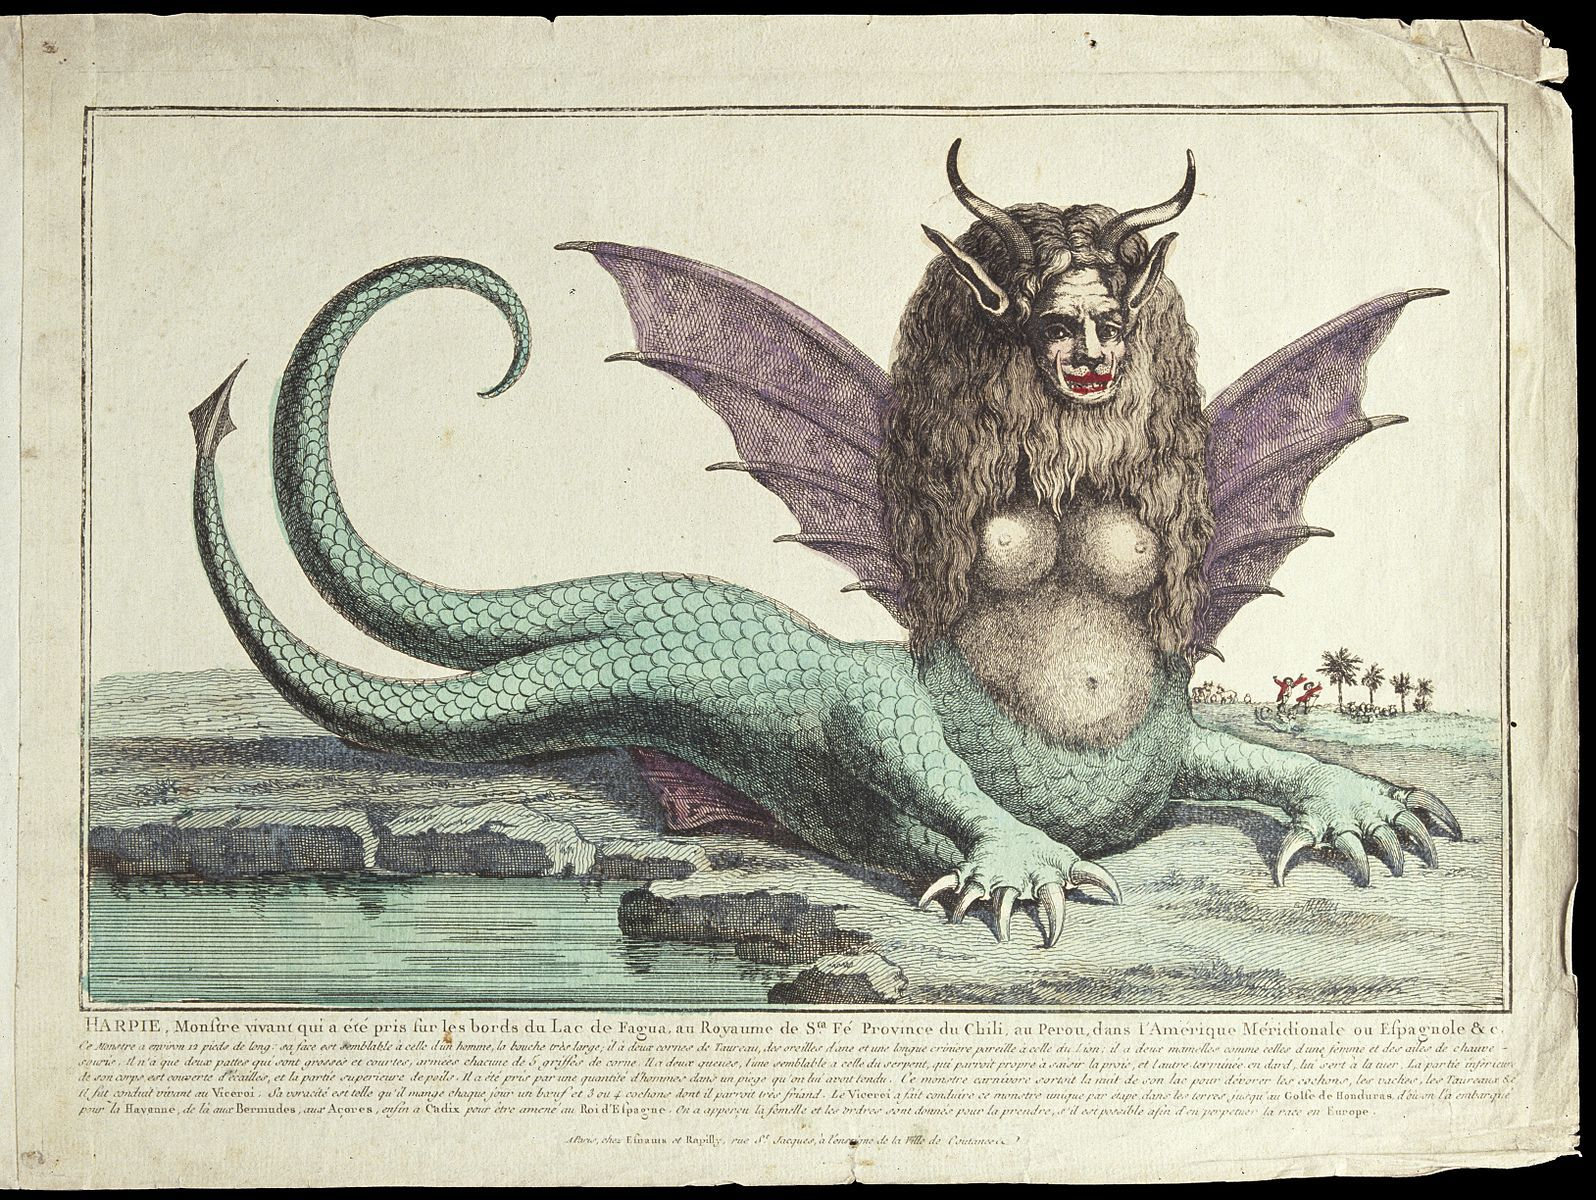 1596px-A_harpy_with_two_tails,_horns,_fangs,_winged_ears,_and_long_Wellcome_V0023077.jpg (1596×1200)